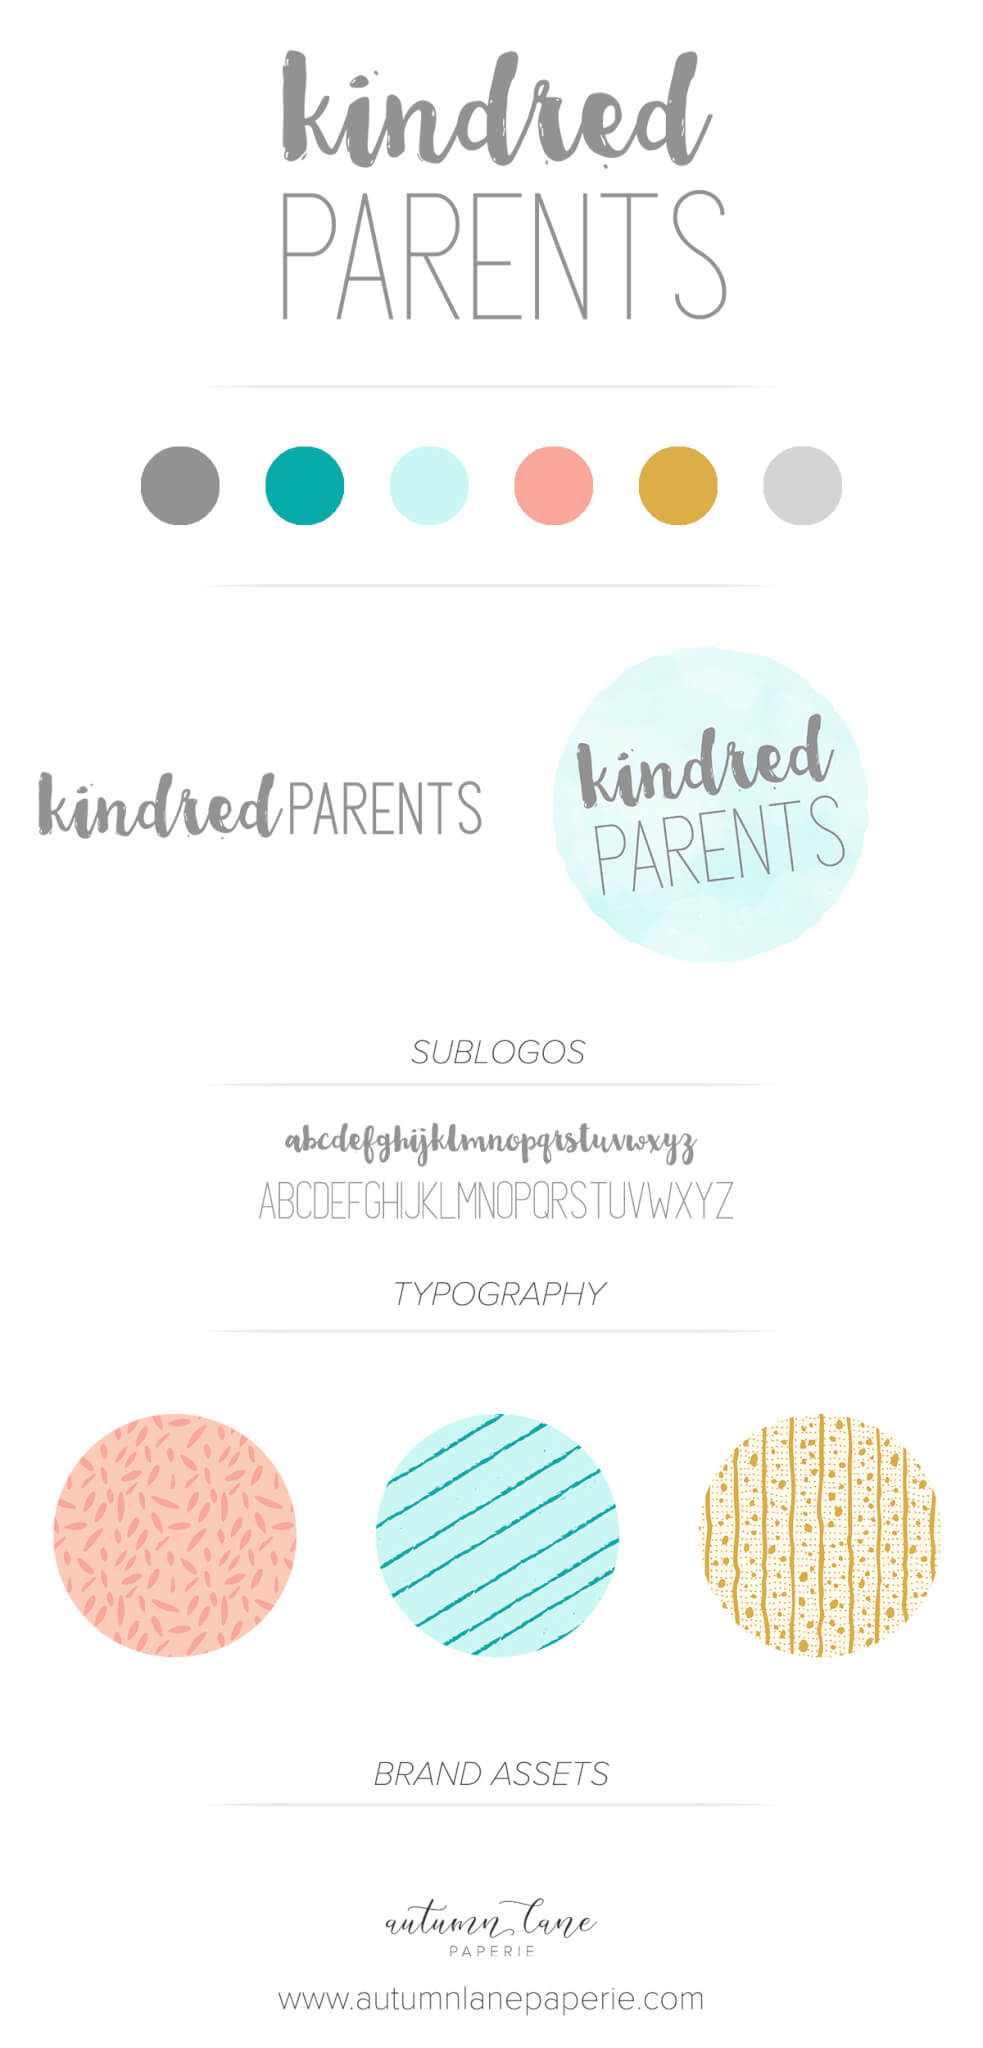 Kindred Parents Brandboard